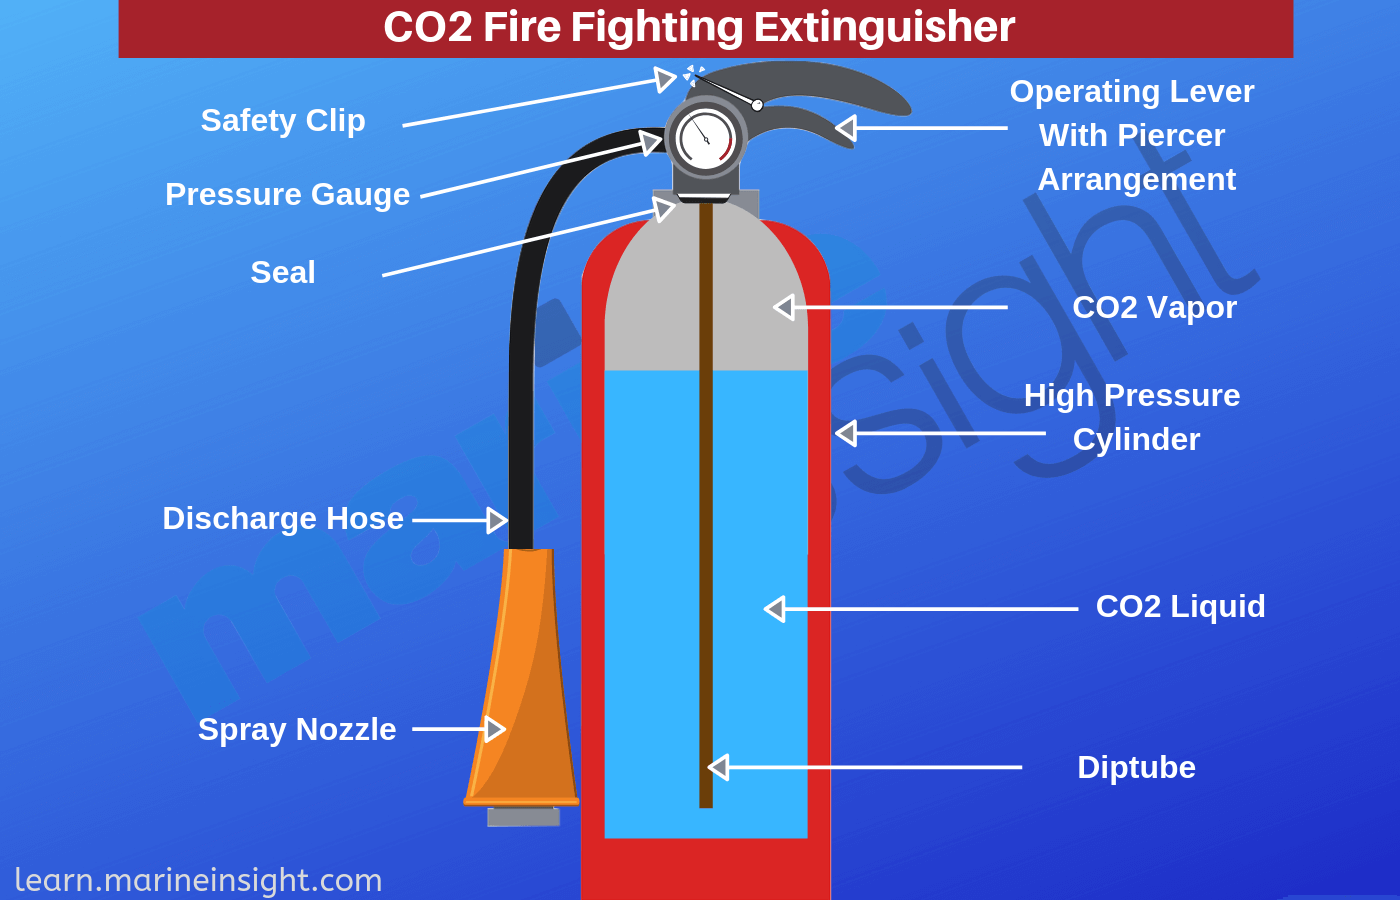 Different Types of Fire Extinguishers Used on Ships